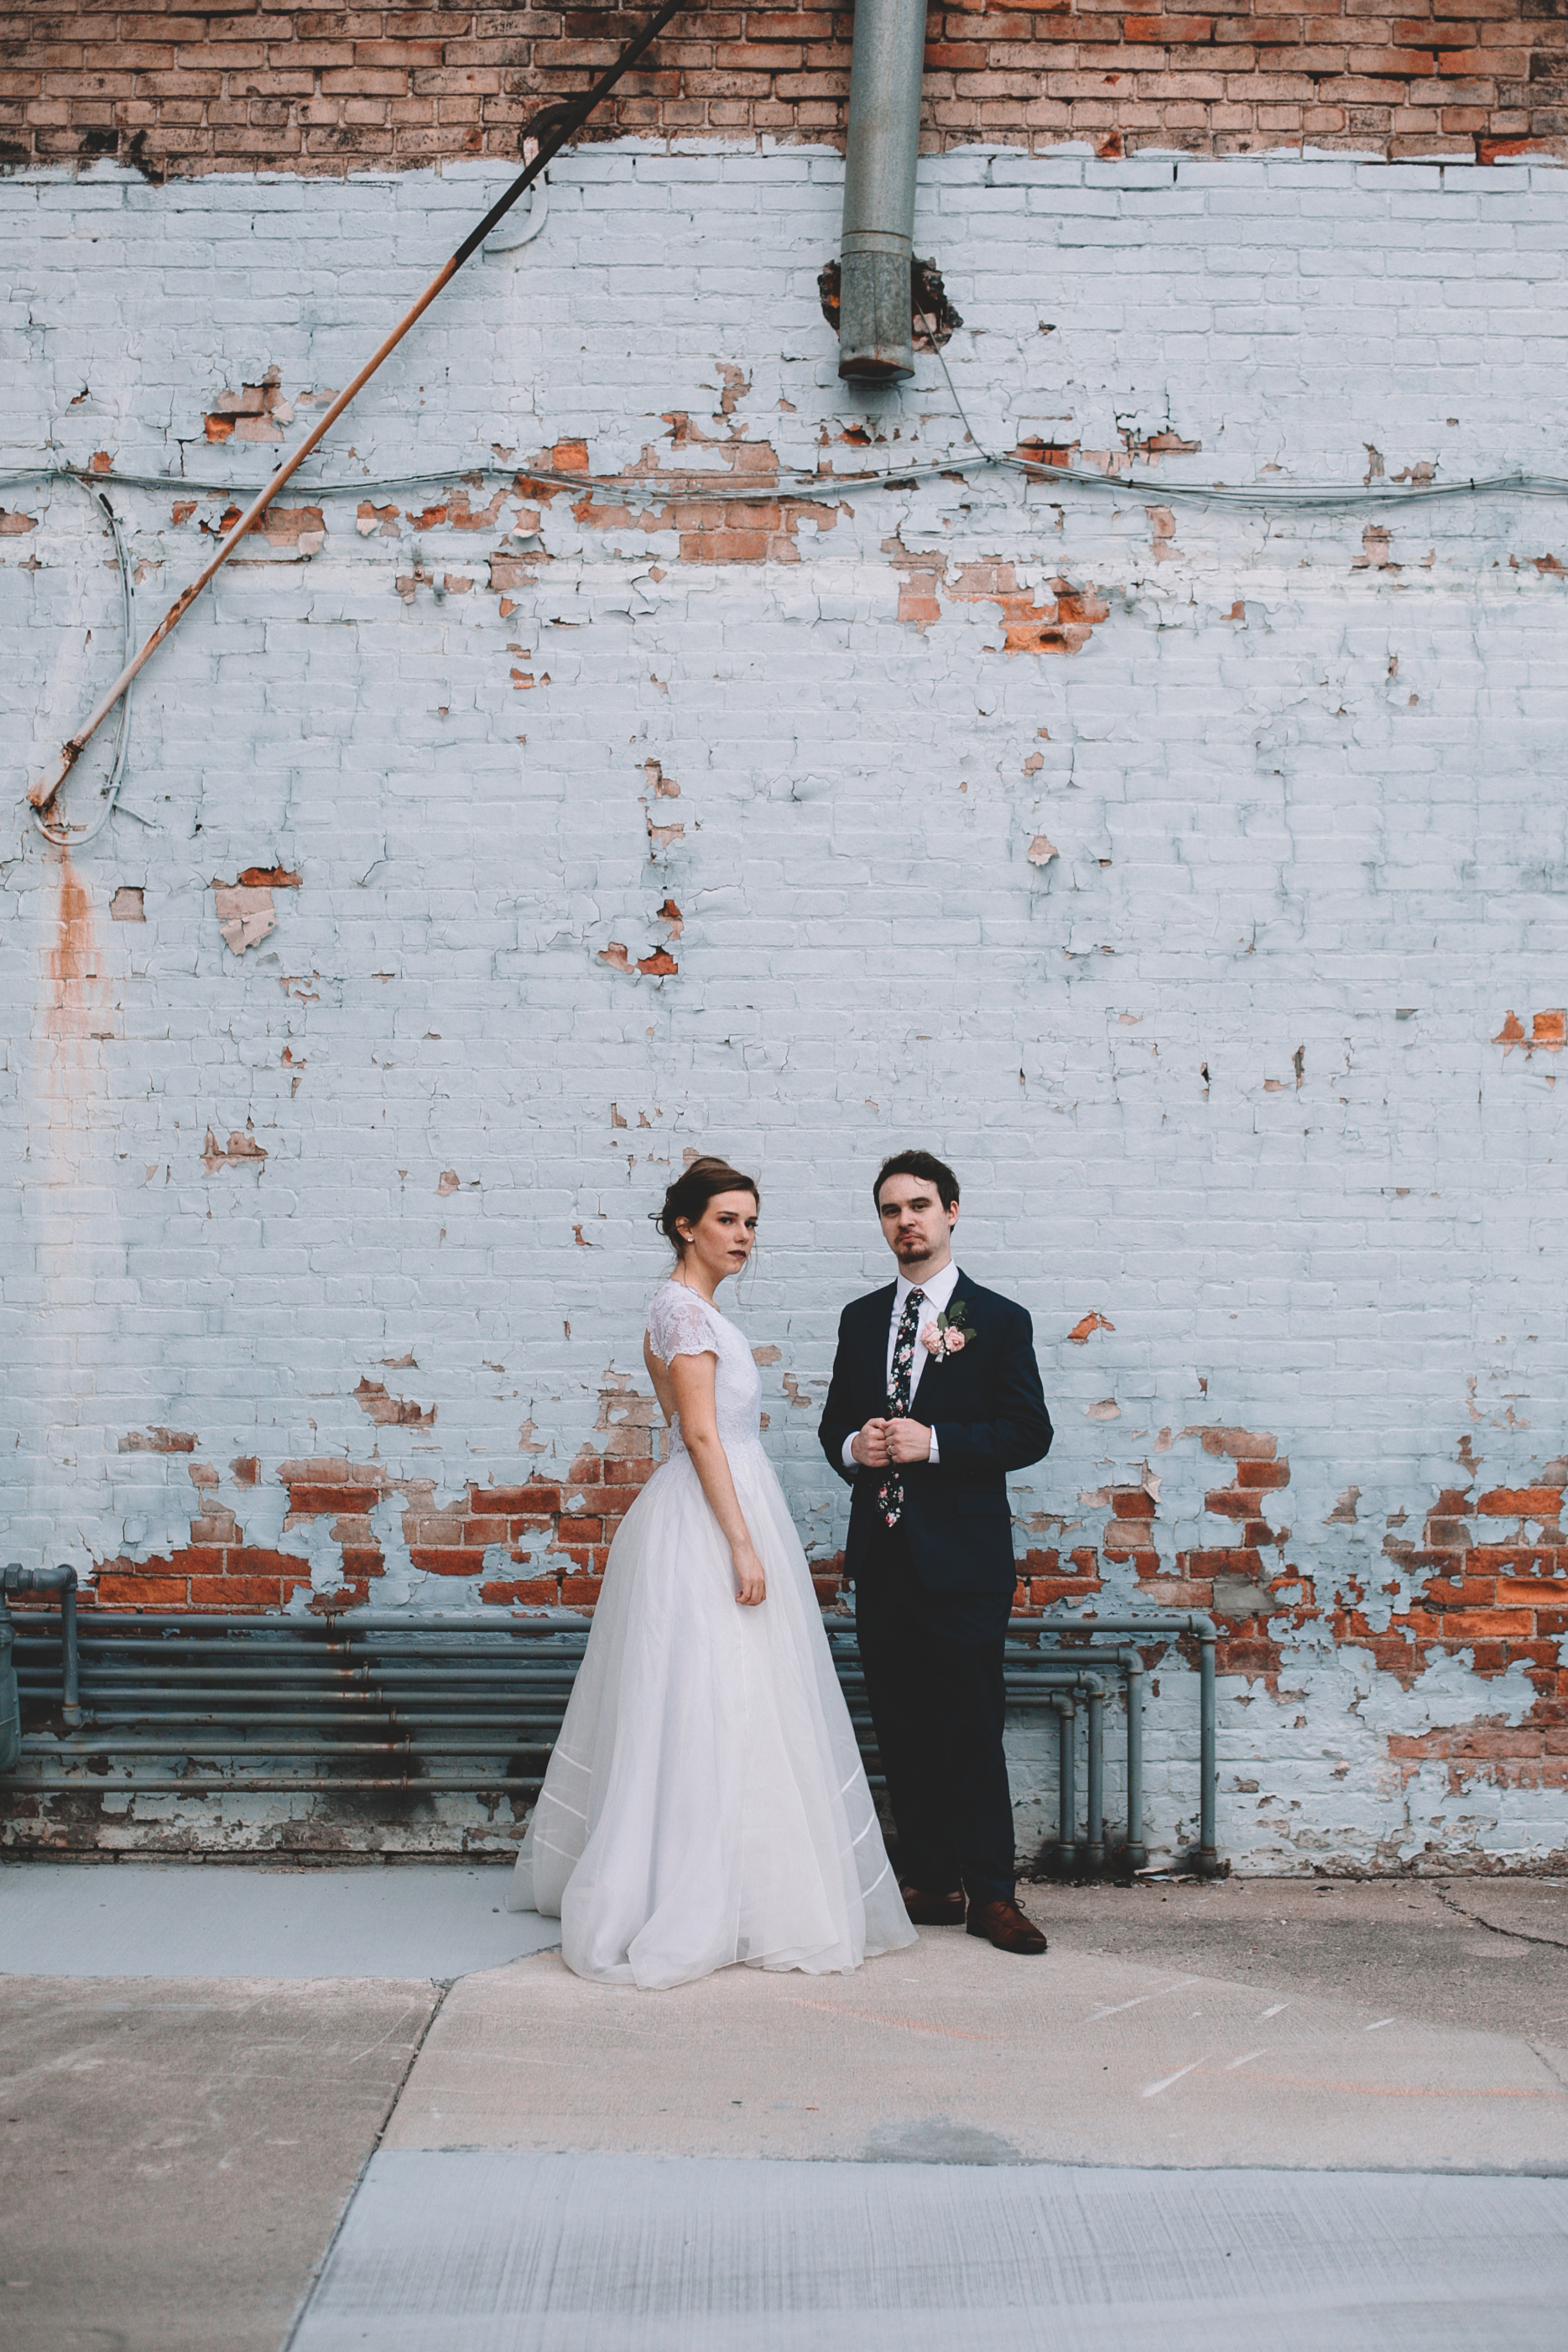 Urban Distressed Brick Wall Bridal Portraits Again We Say Rejoice Photography (7 of 18).jpg